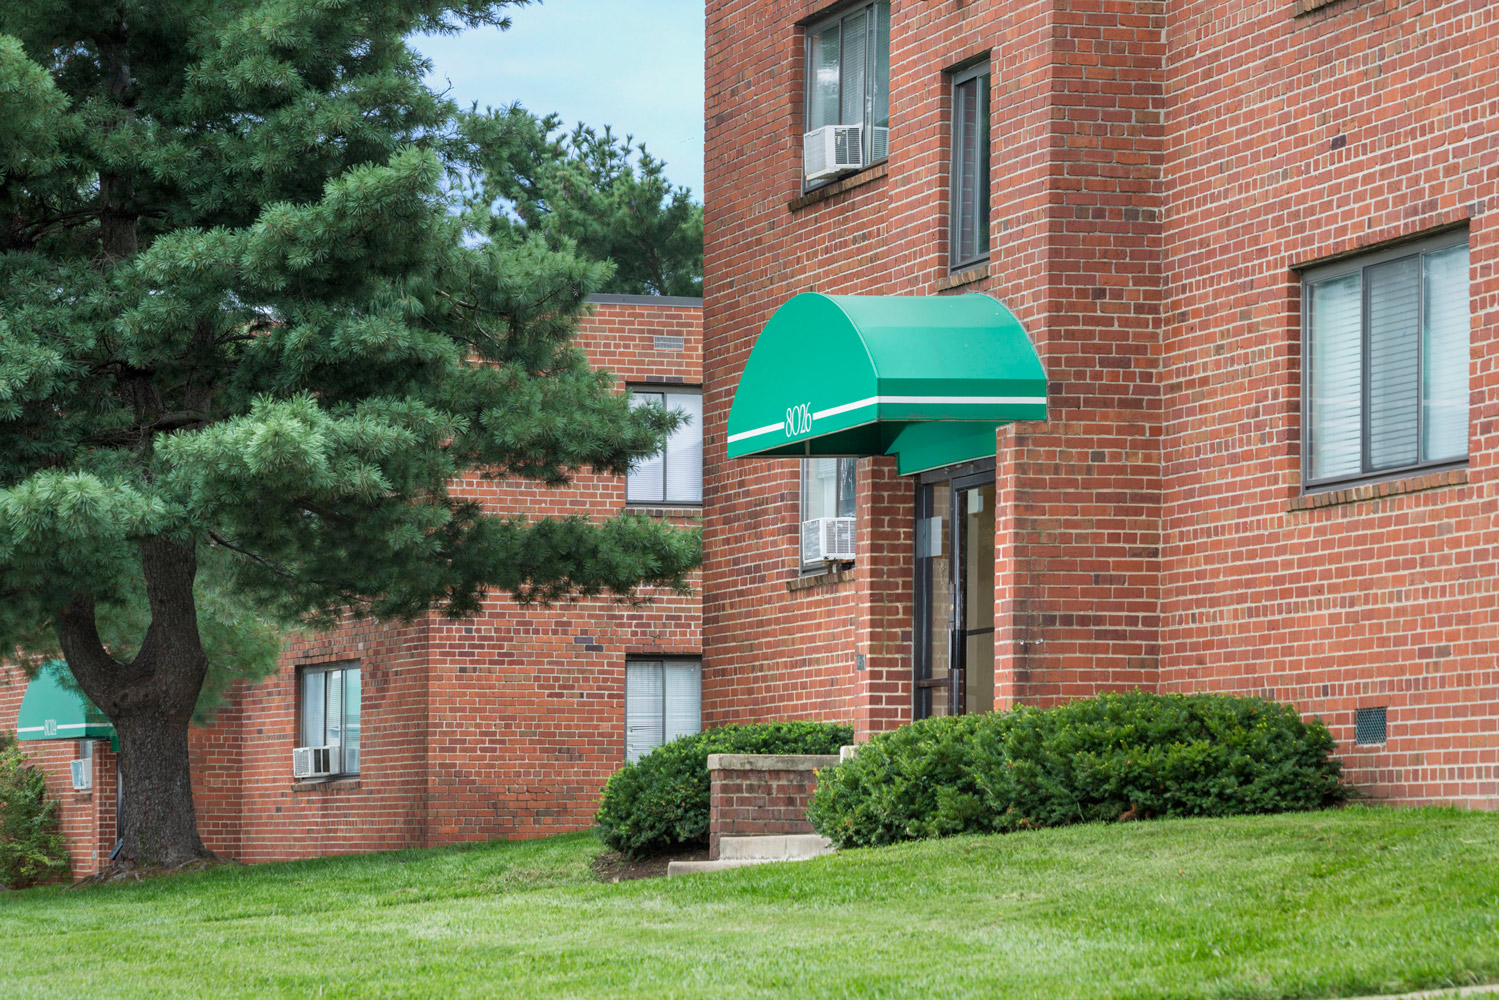 1 and 2 bedroom apartments at Liberty Place Apartments in Langley Park, MD